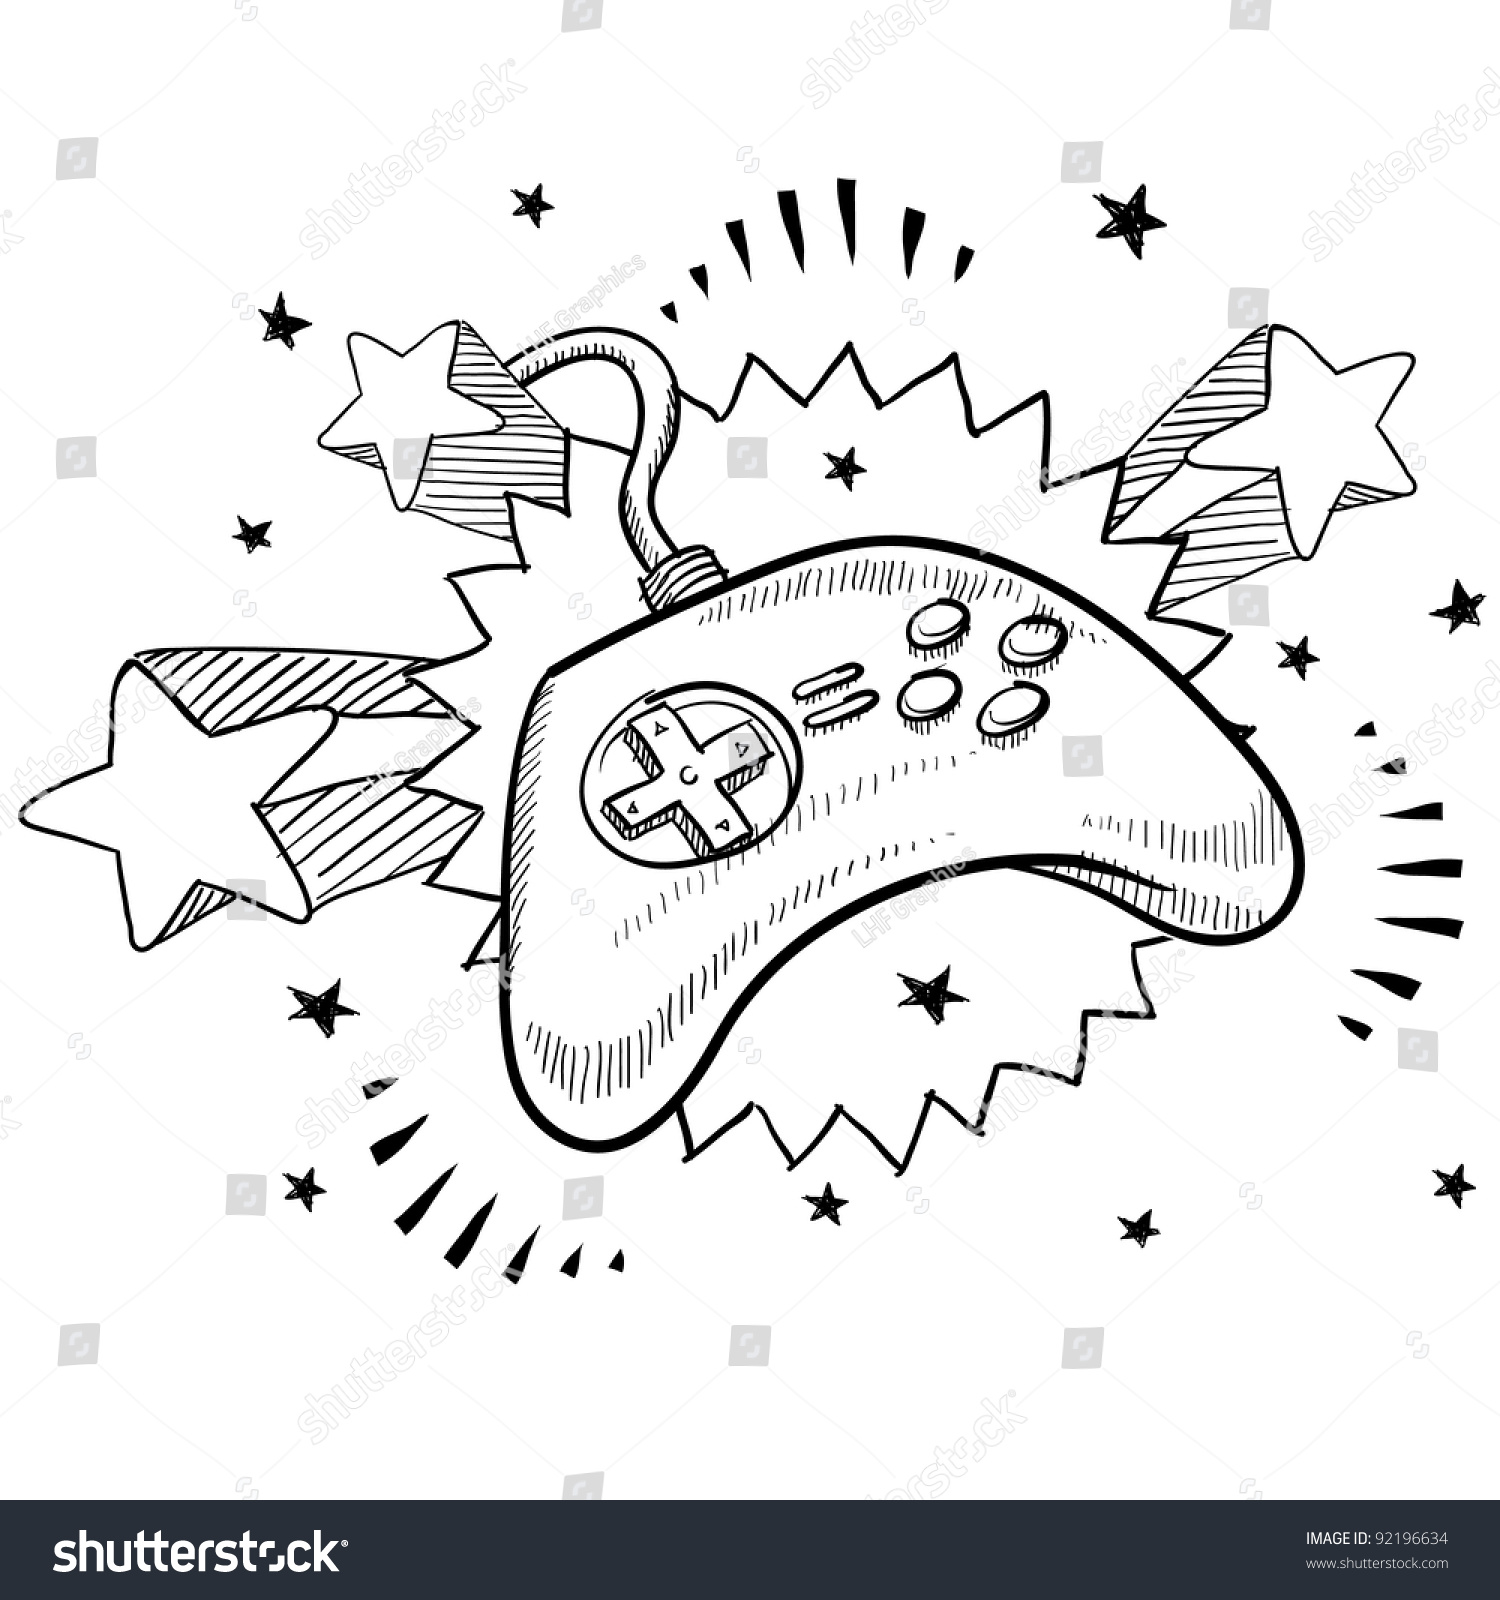 royalty free doodle style video game controller 92196634 stock 60'S Background doodle style video game controller illustration in vector format with retro 1970s pop background 92196634